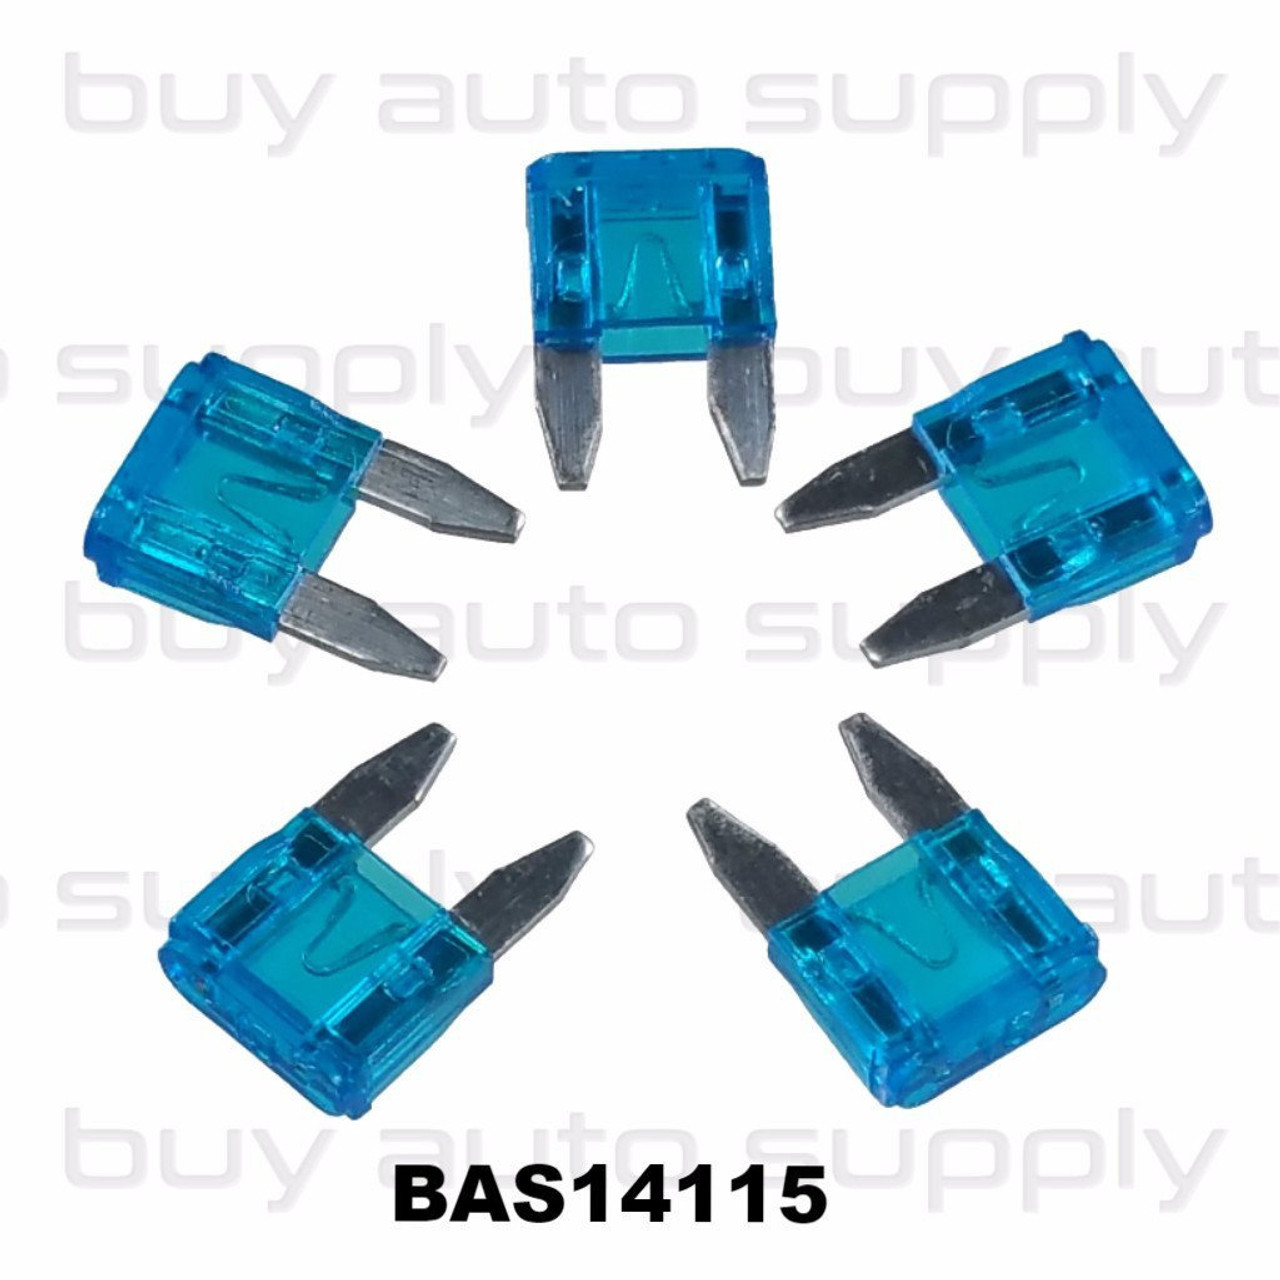 ATM Mini 15 Amp Fuse - BAS14115 - from Buy Auto Supply